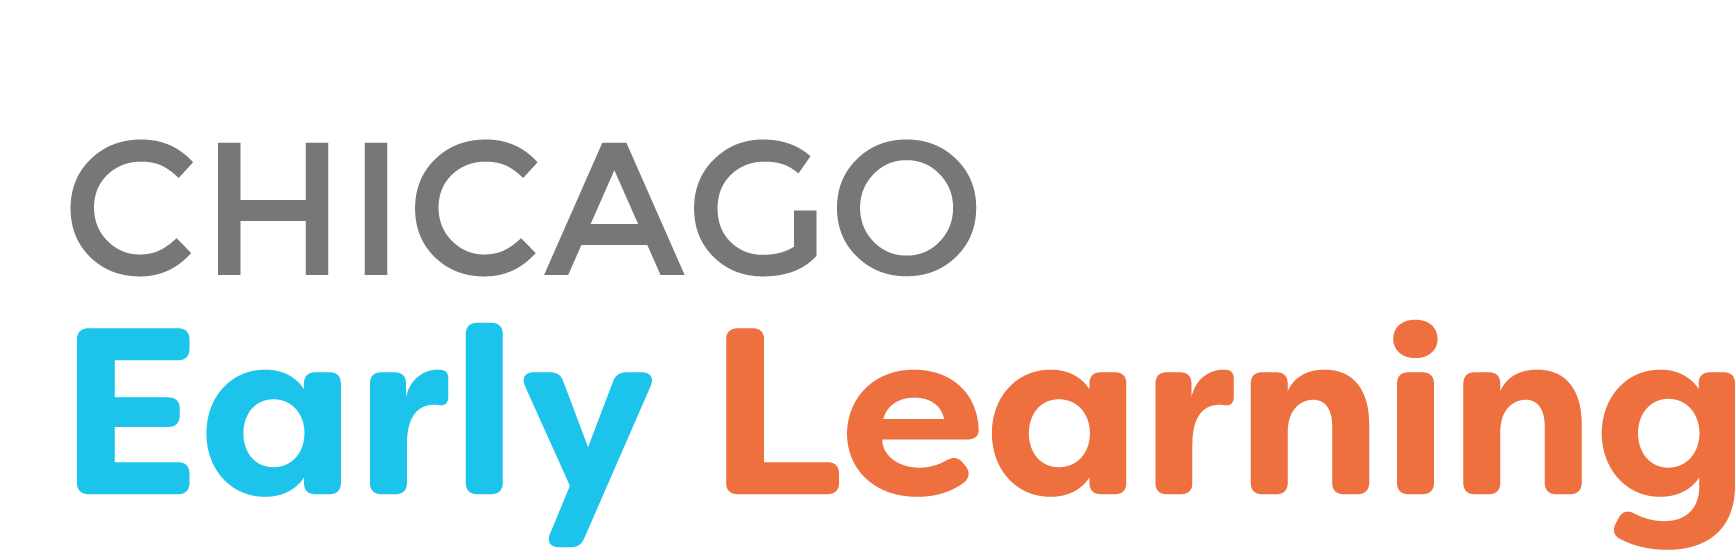 Chicago Early Learning - FAQ